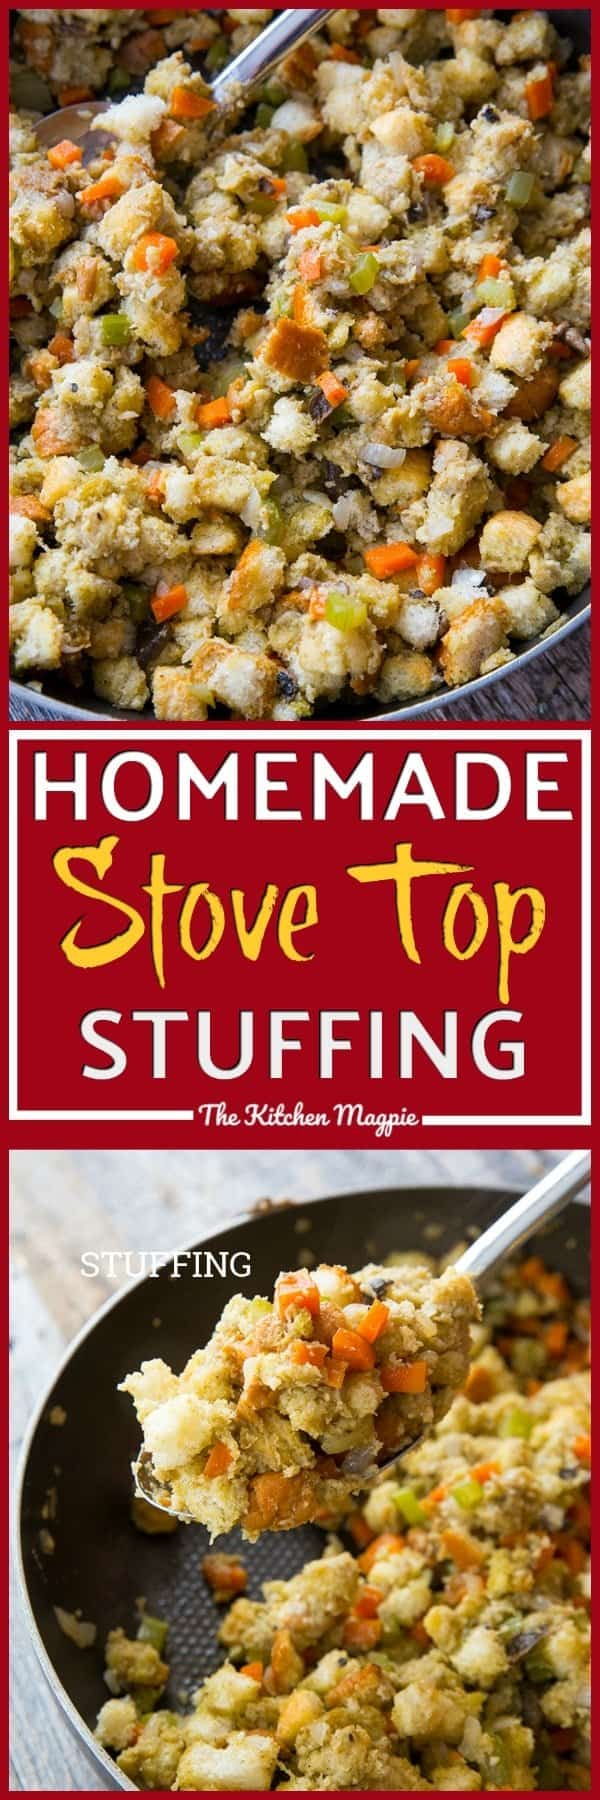 Homemade stove top stuffing, one of my favorite things to eat during the holidays! This is the best recipe I have found yet! Recipe from @kitchenmagpie. #stuffing #dressing #recipes #food #christmas #turkey #meals #holidays #thanksgiving